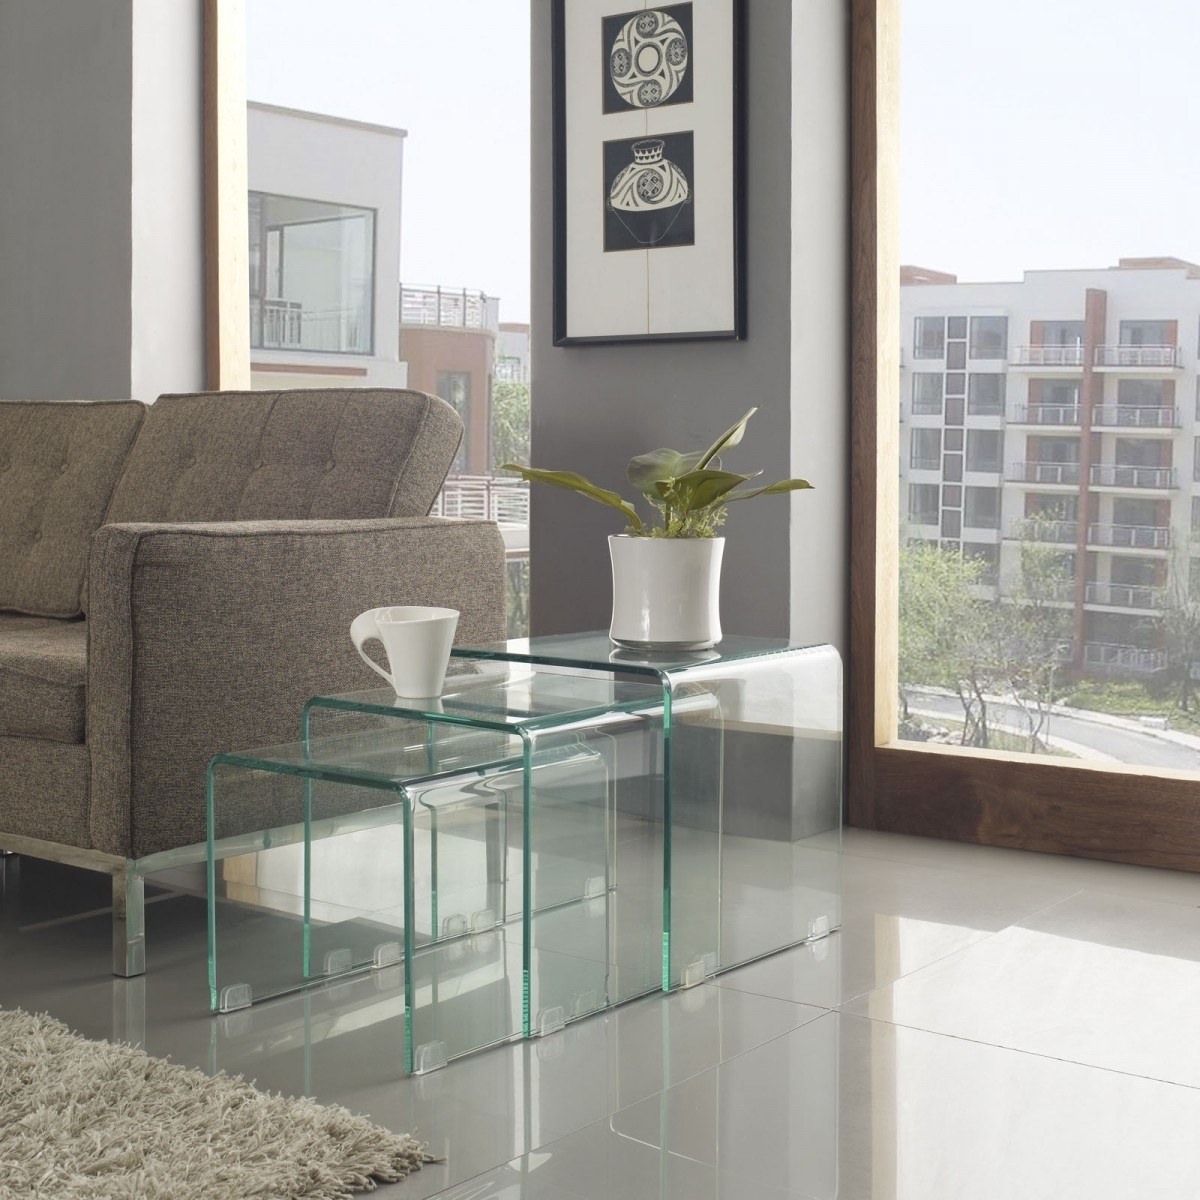 Kitchener Sectional Sofas Pertaining To Most Popular Coffee Table : Pit Sectional Sofas For Sale Accent Chairs Ontario (Gallery 16 of 20)